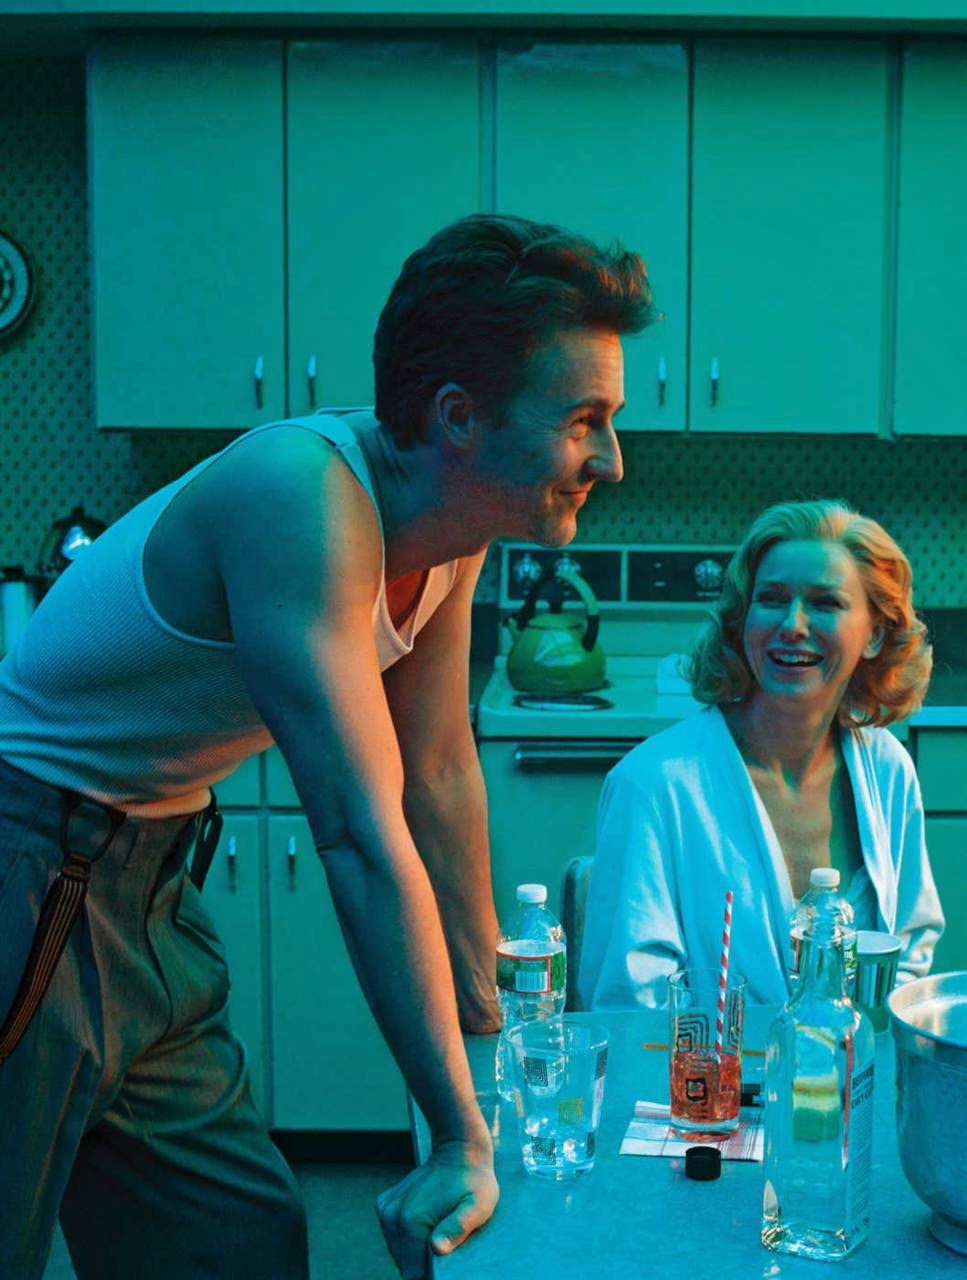 birdman-edward norton-naomi watts